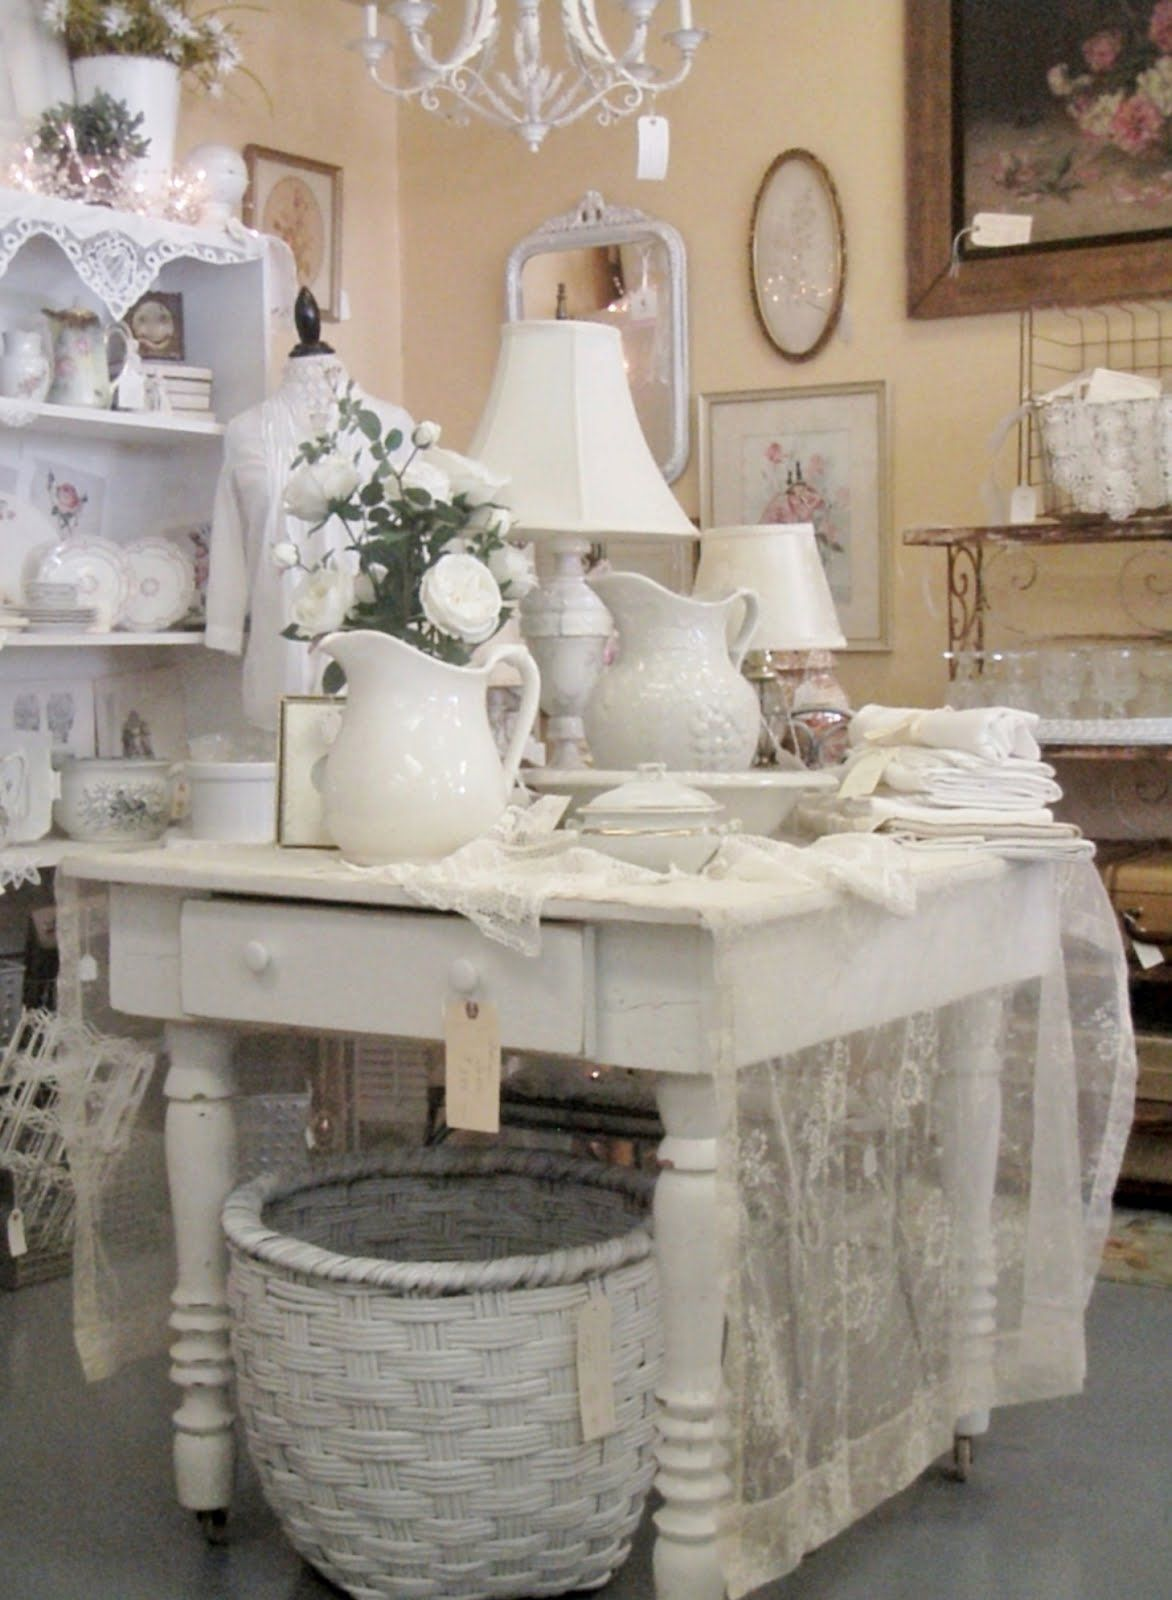 around the shop display ideals cottage shabby chic cottage style. Black Bedroom Furniture Sets. Home Design Ideas